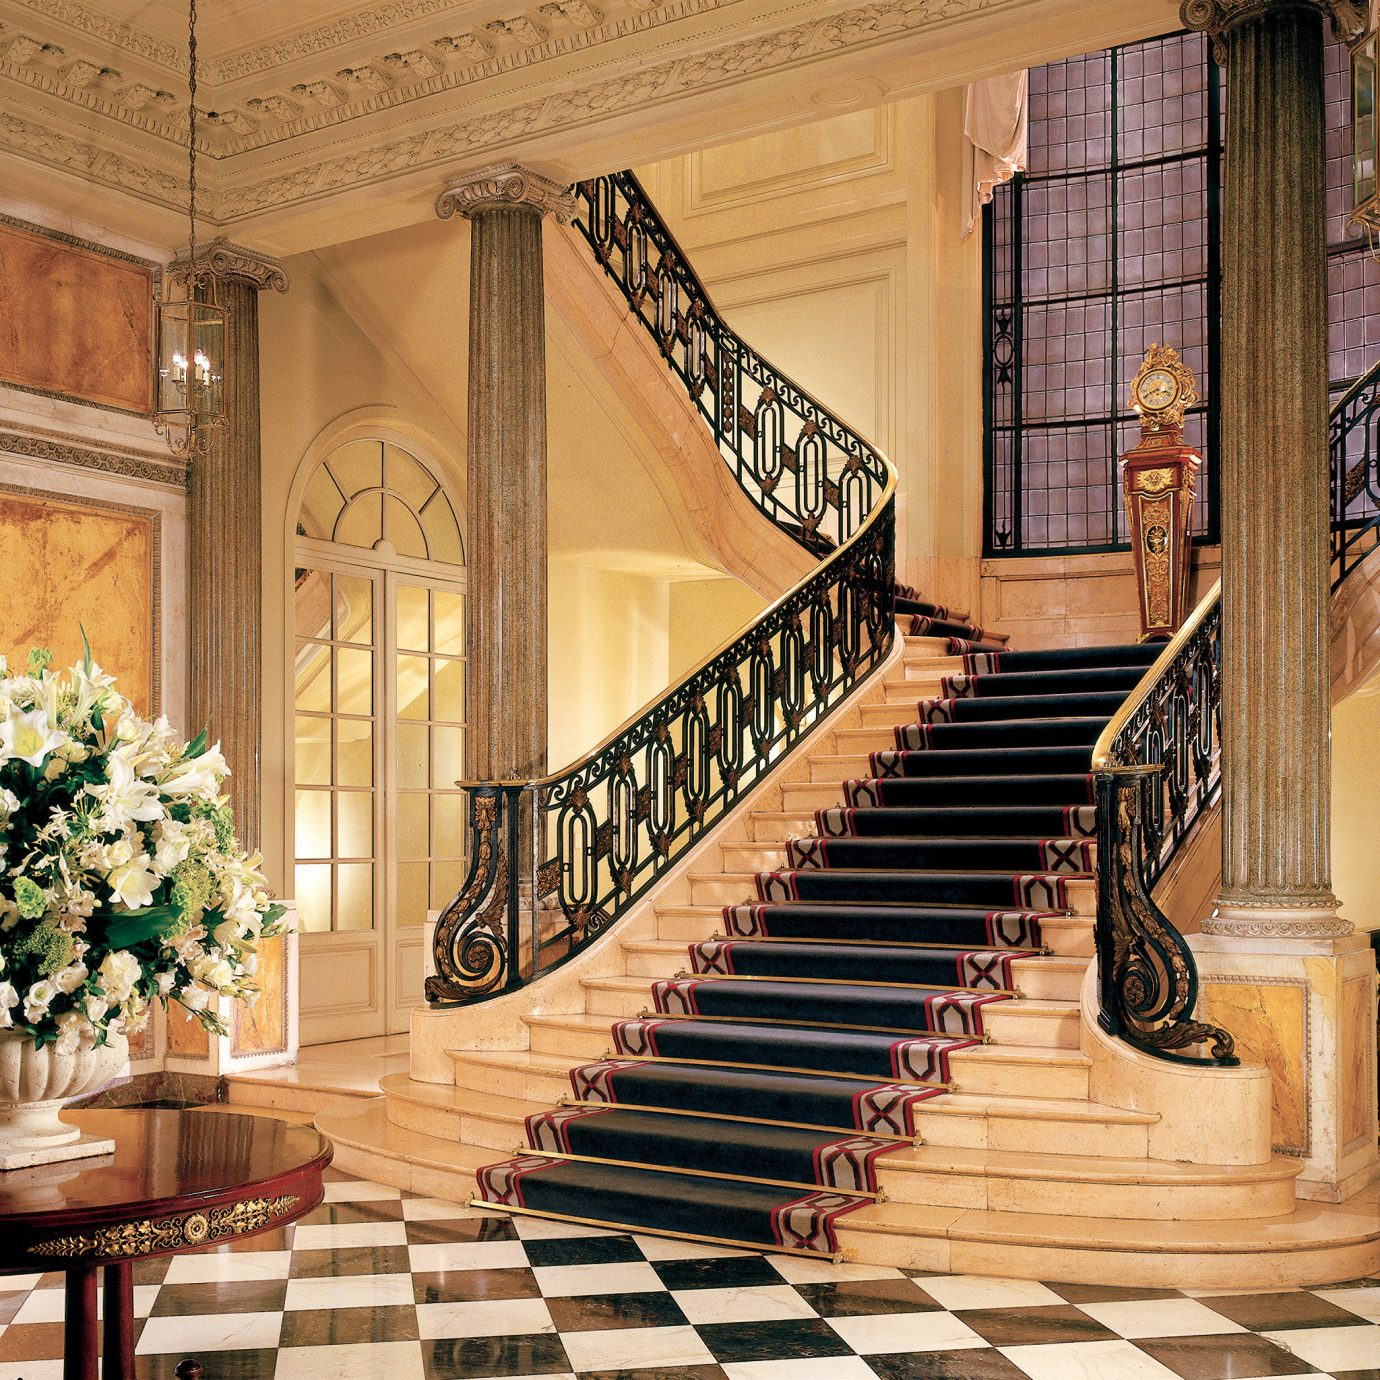 Elegant Historic Lounge Luxury stairs building Lobby home mansion living room